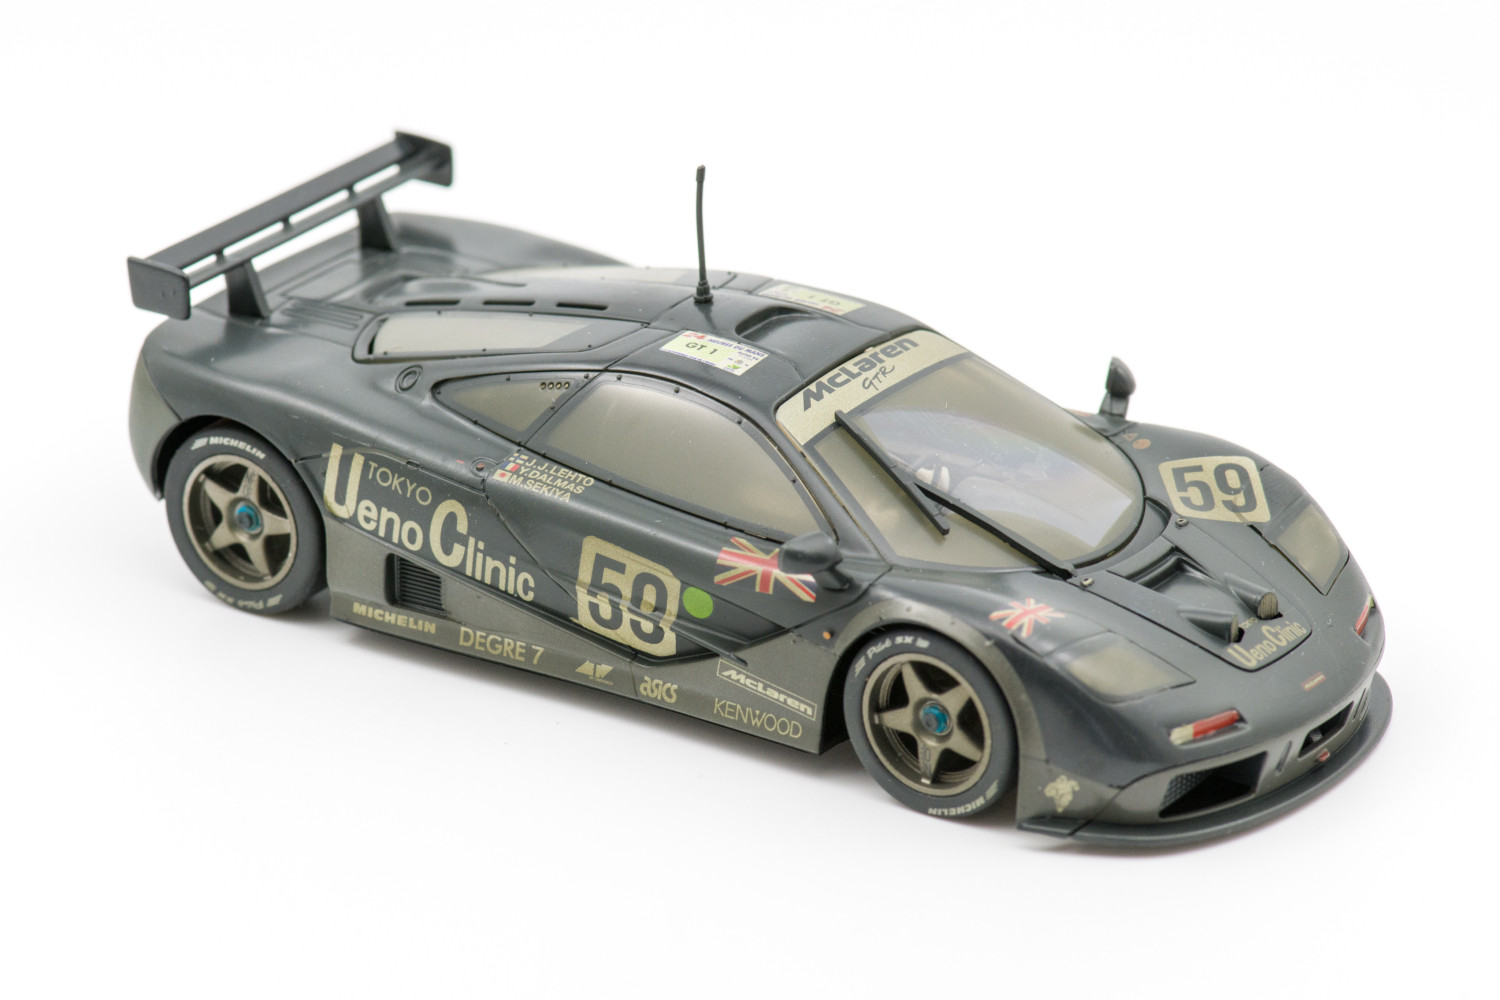 McLaren F1 GTR No.59 'Weathered' Le Mans 1995 Winner